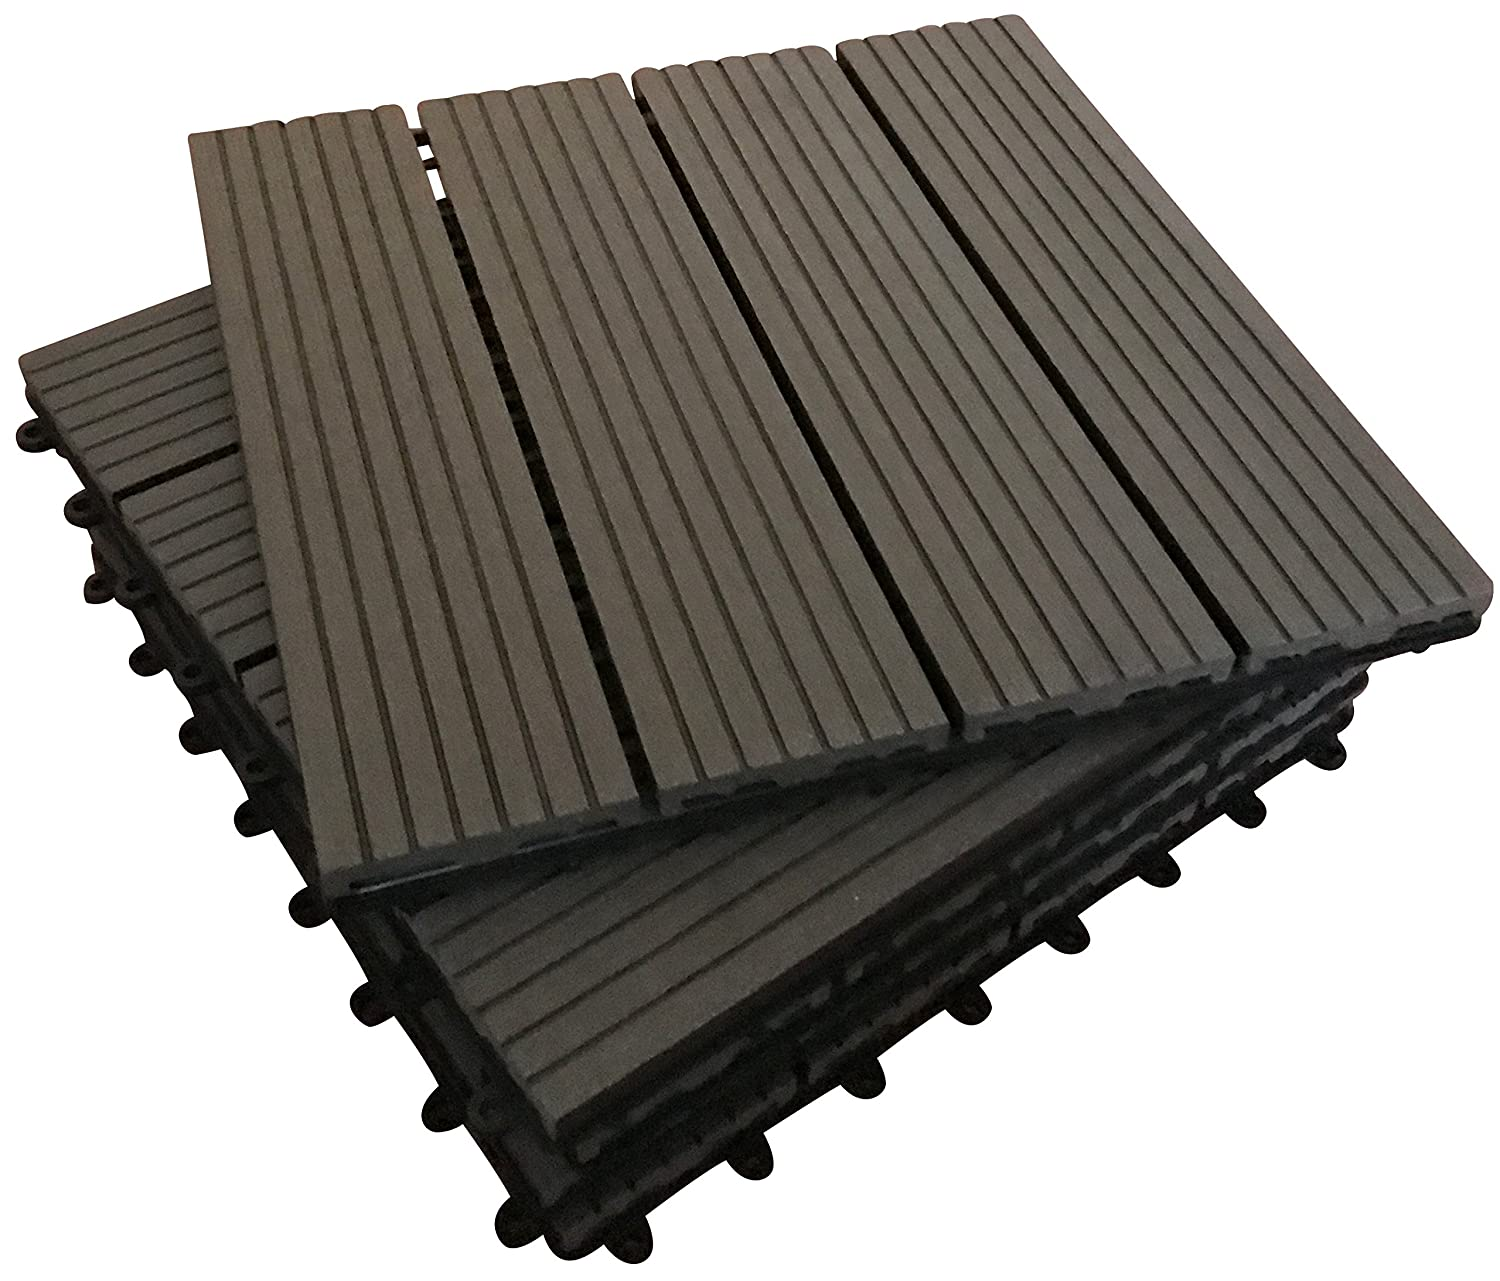 36 x Interlocking Composite Sonnendeck Fliesen – Ebenholz click-deck Fliesen – Terrasse, Garten, Balkon, Hot Tub. 30 cm quadratisch Deck Tile